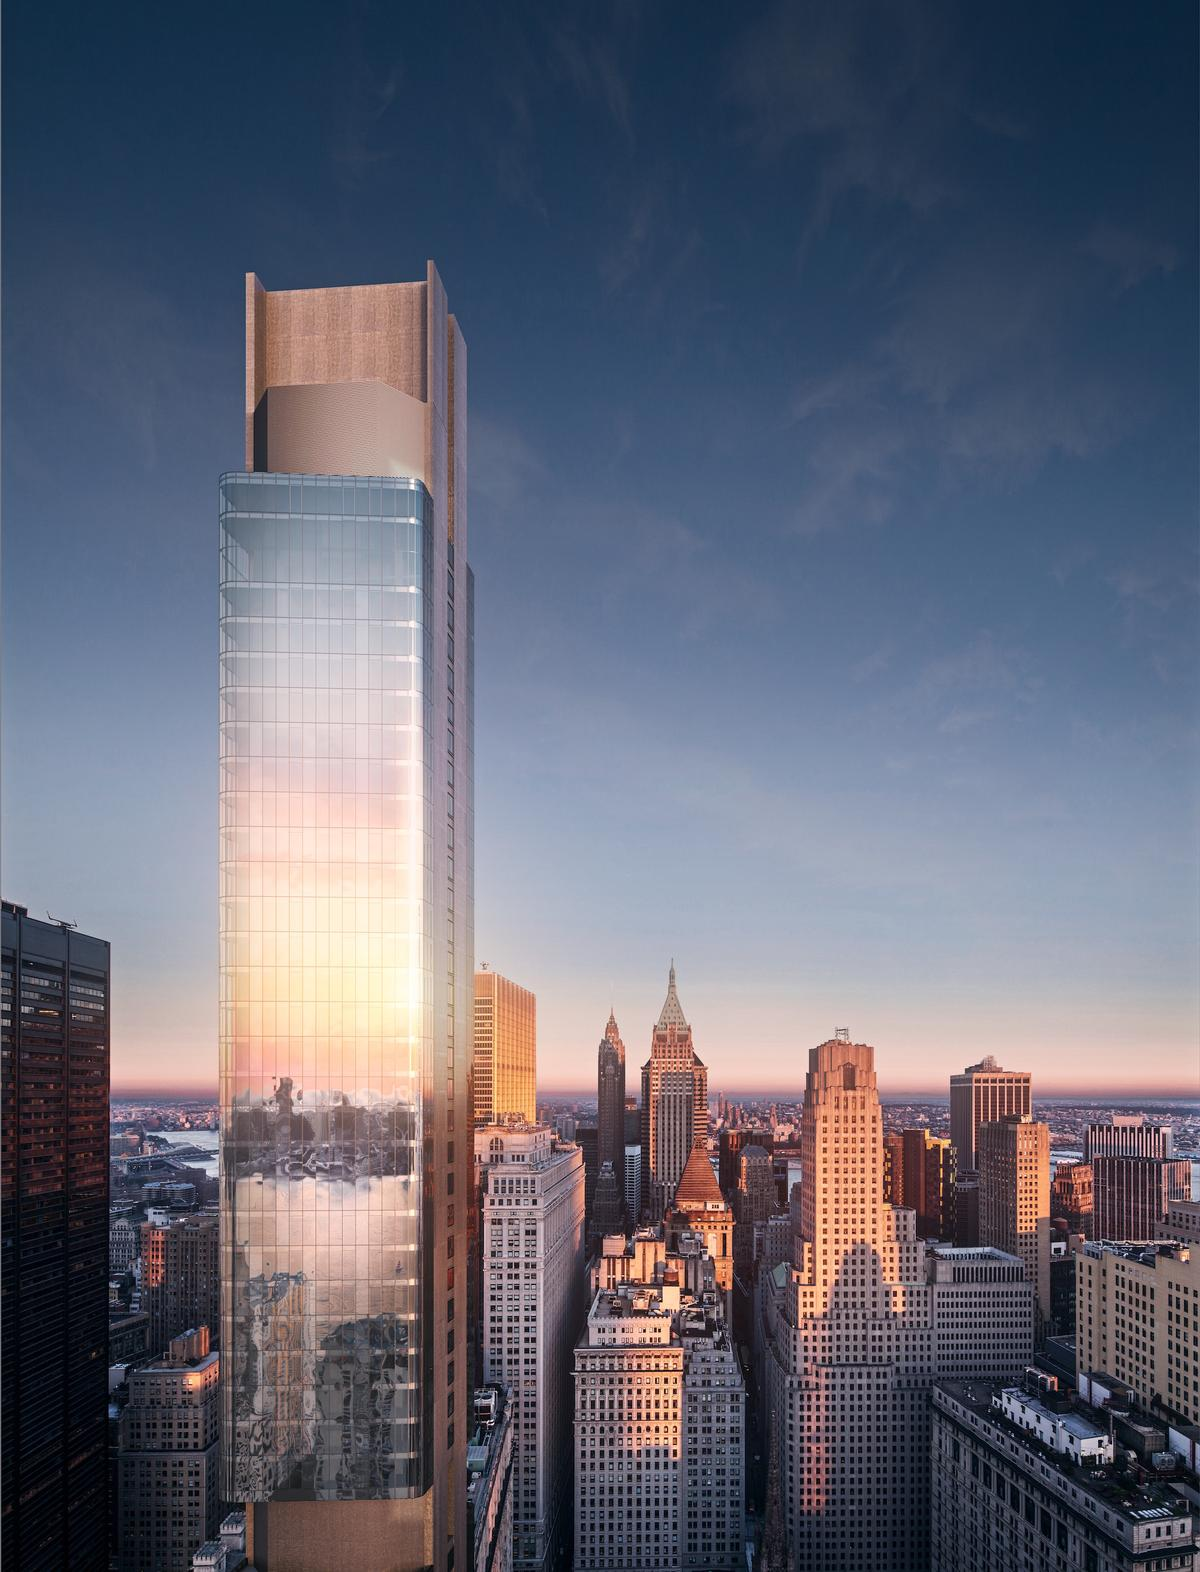 Global real estate firm Bizzi & Partners Development are overseeing the creation of the 88-storey, 912ft tall luxury condominium skyscraper, called 125 Greenwich Street / March